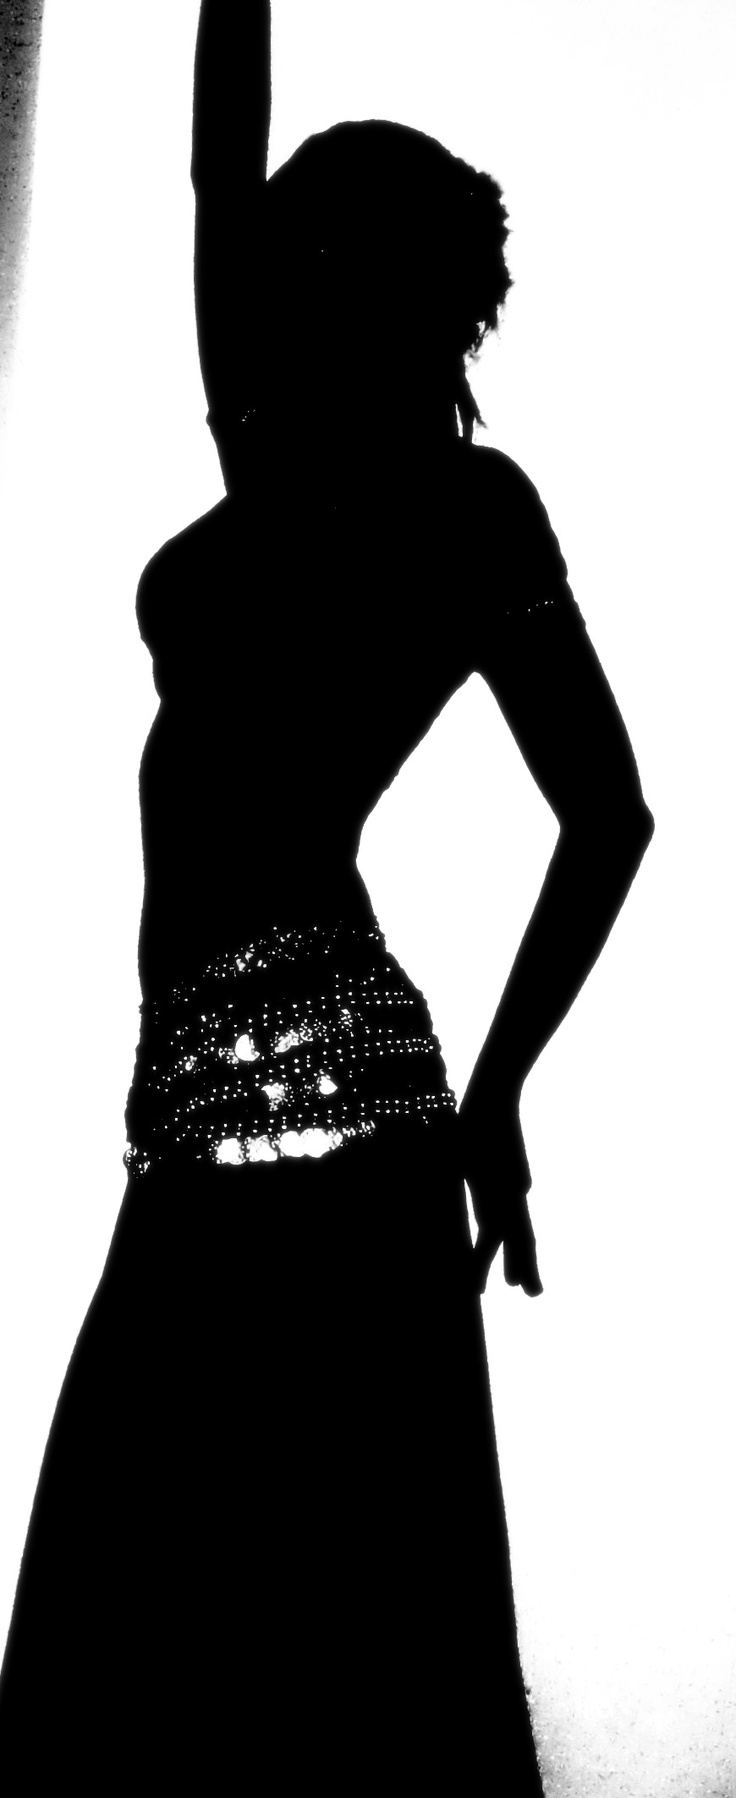 belly dancer silhouette 337 best belly dance and tribal fusion images on pinterest 8285